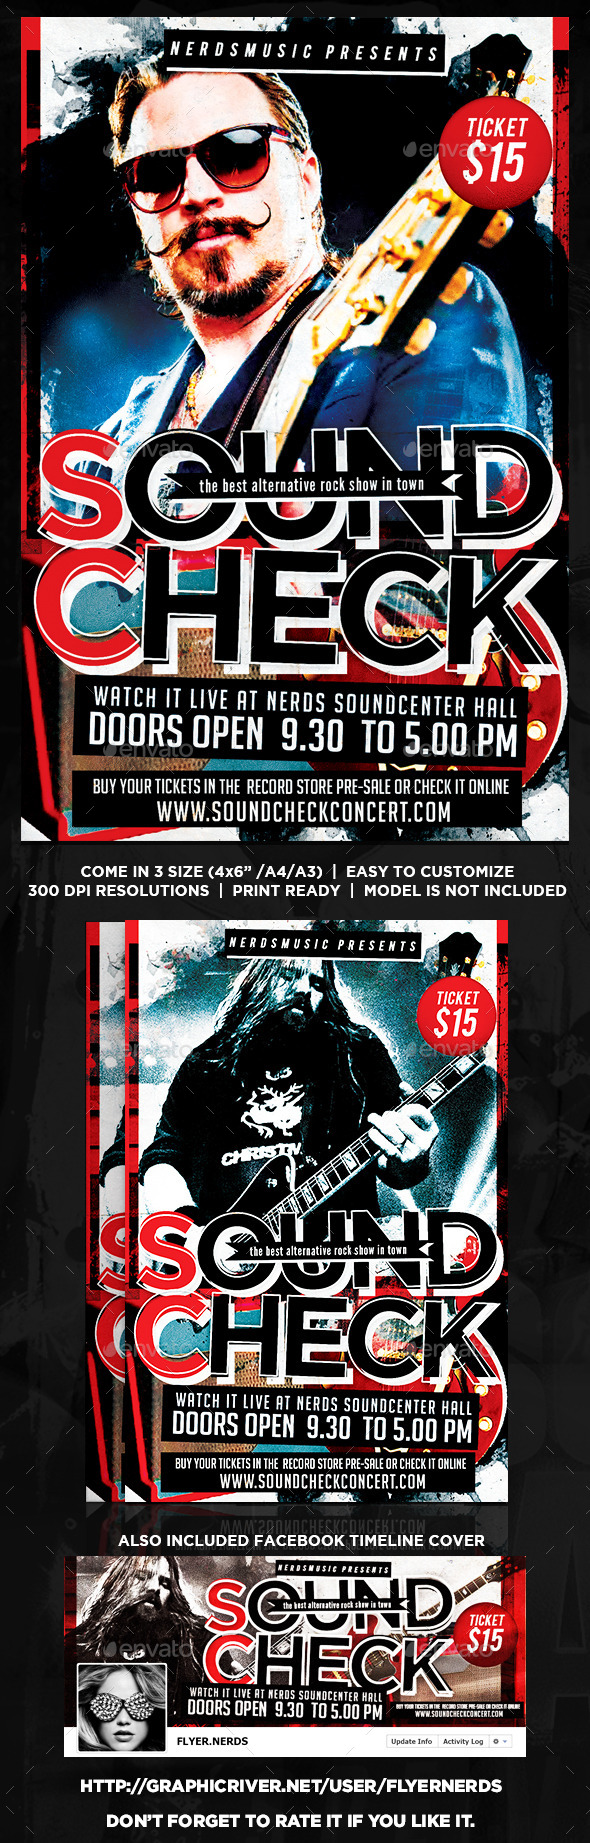 GraphicRiver Sound Check Music Flyer 8844255